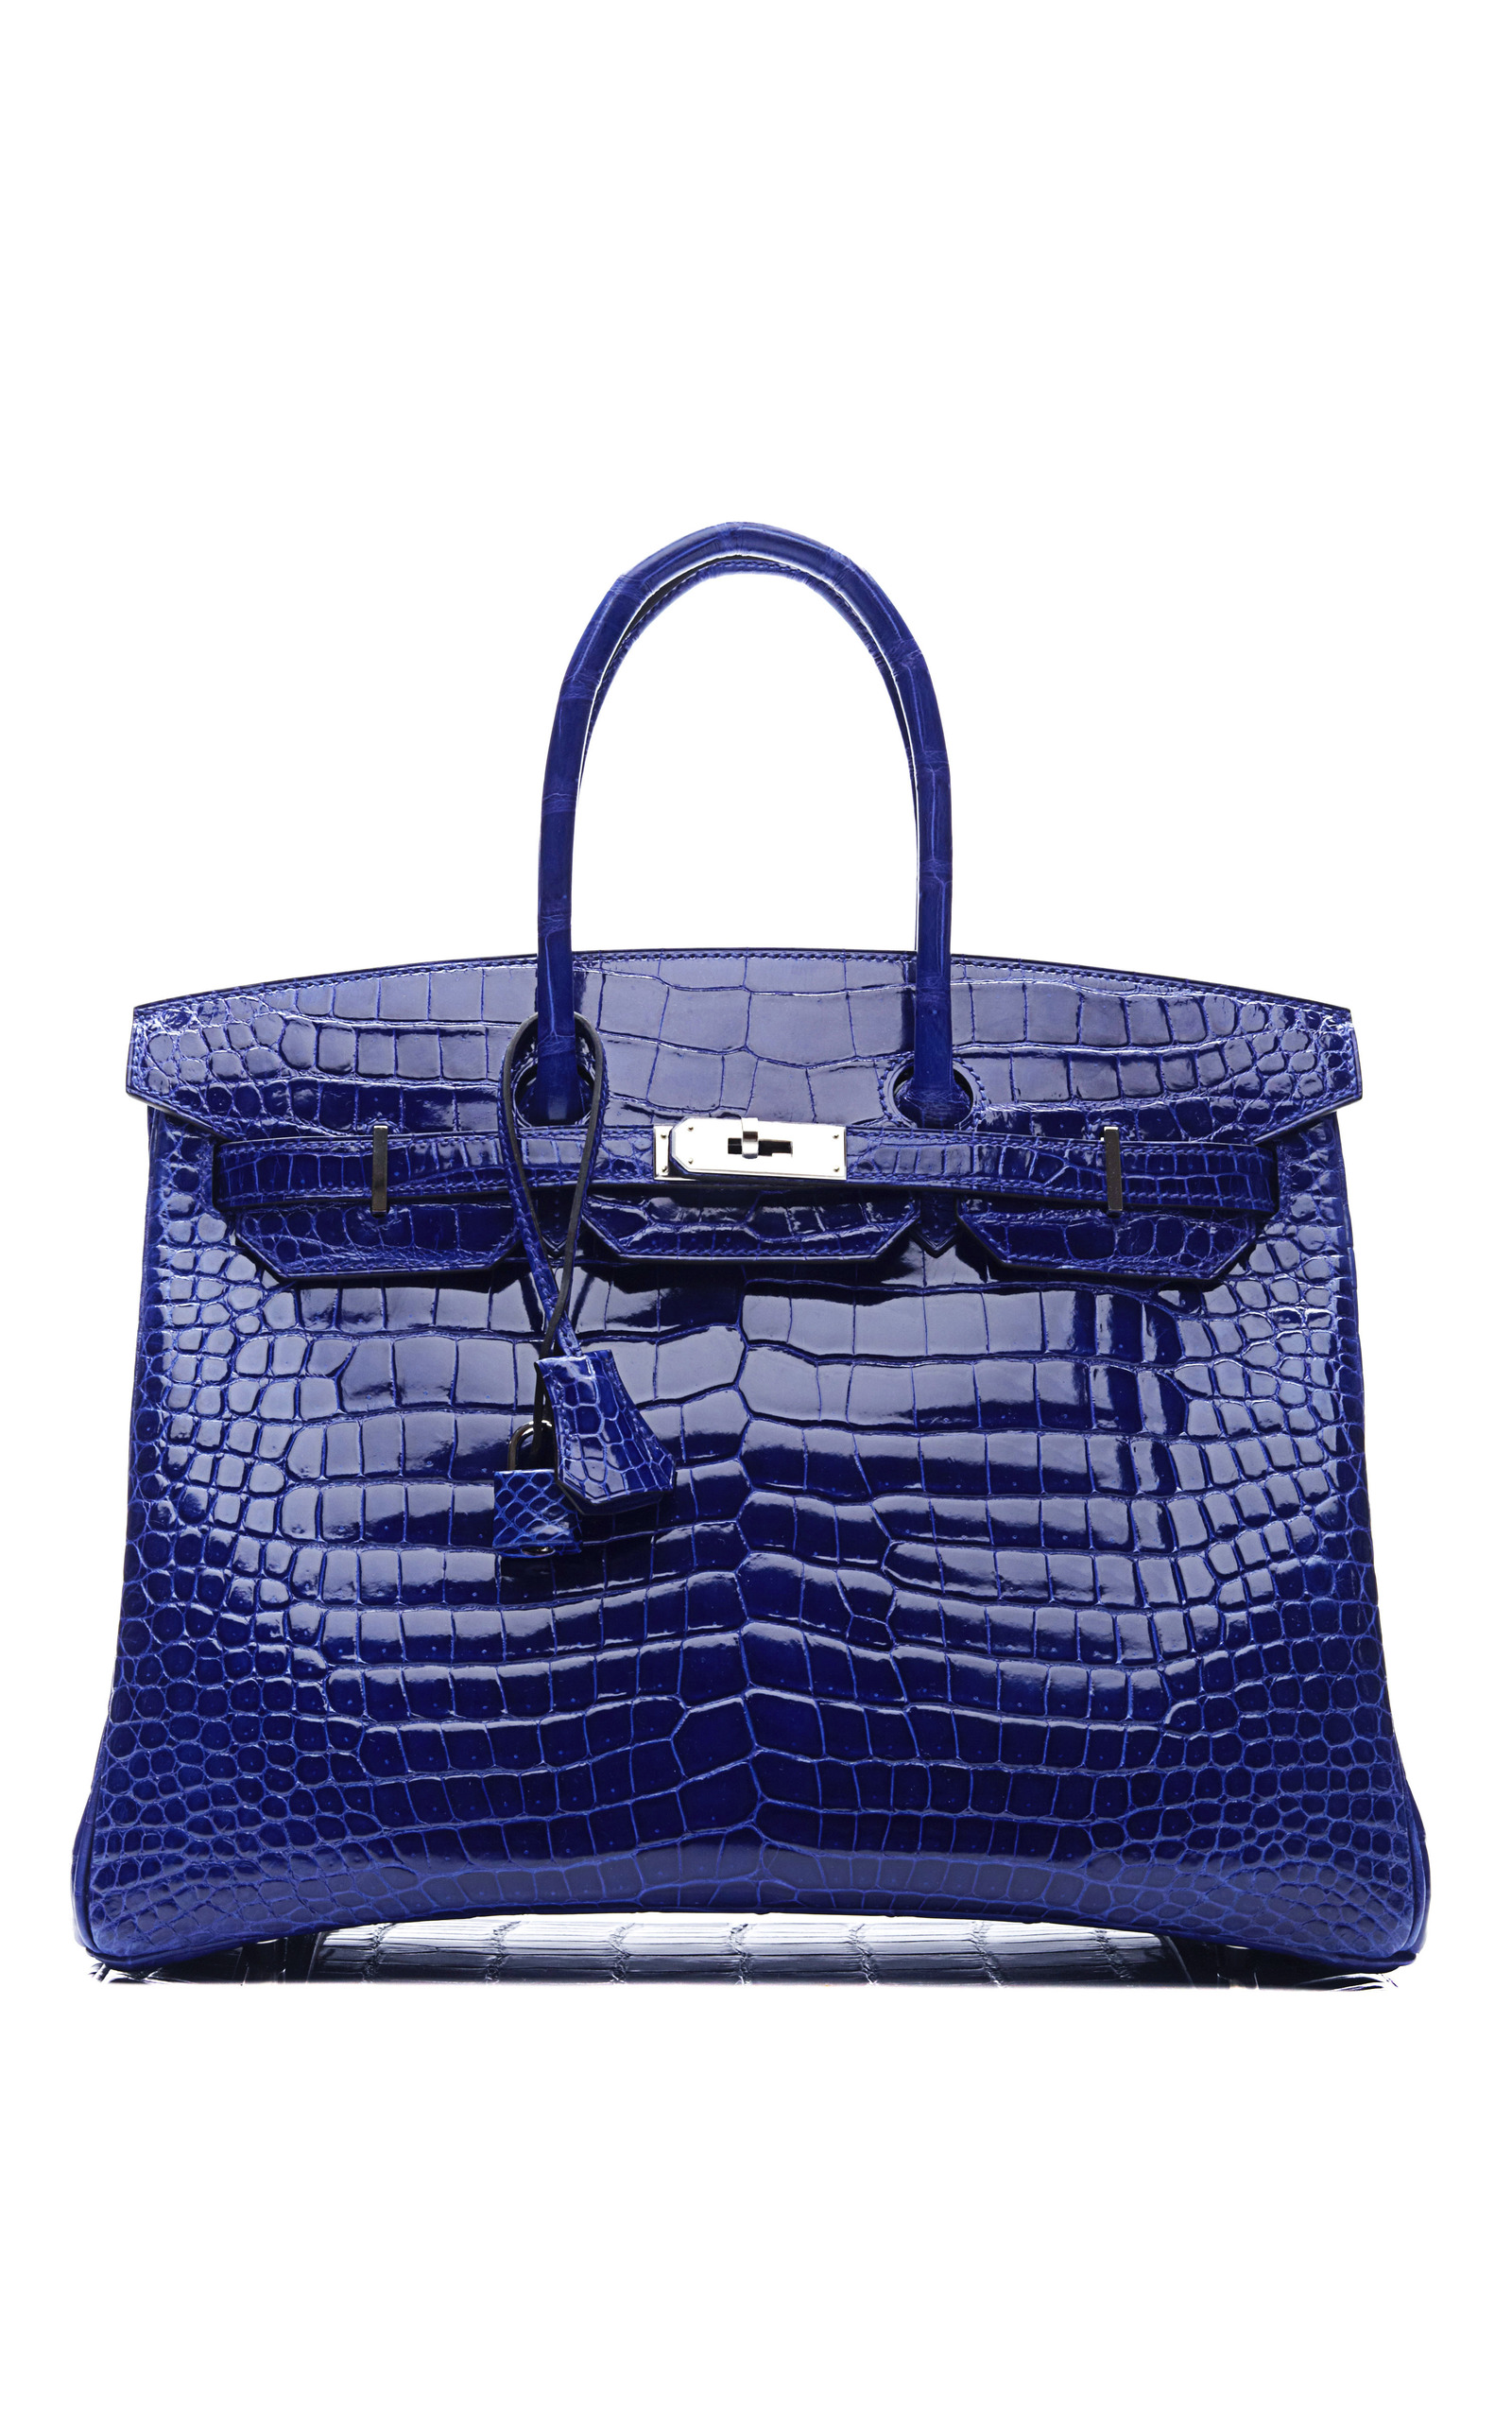 272e867d2ba1 Hermes Vintage35Cm Shiny Electric Blue Porosus Crocodile Birkin. CLOSE.  Loading